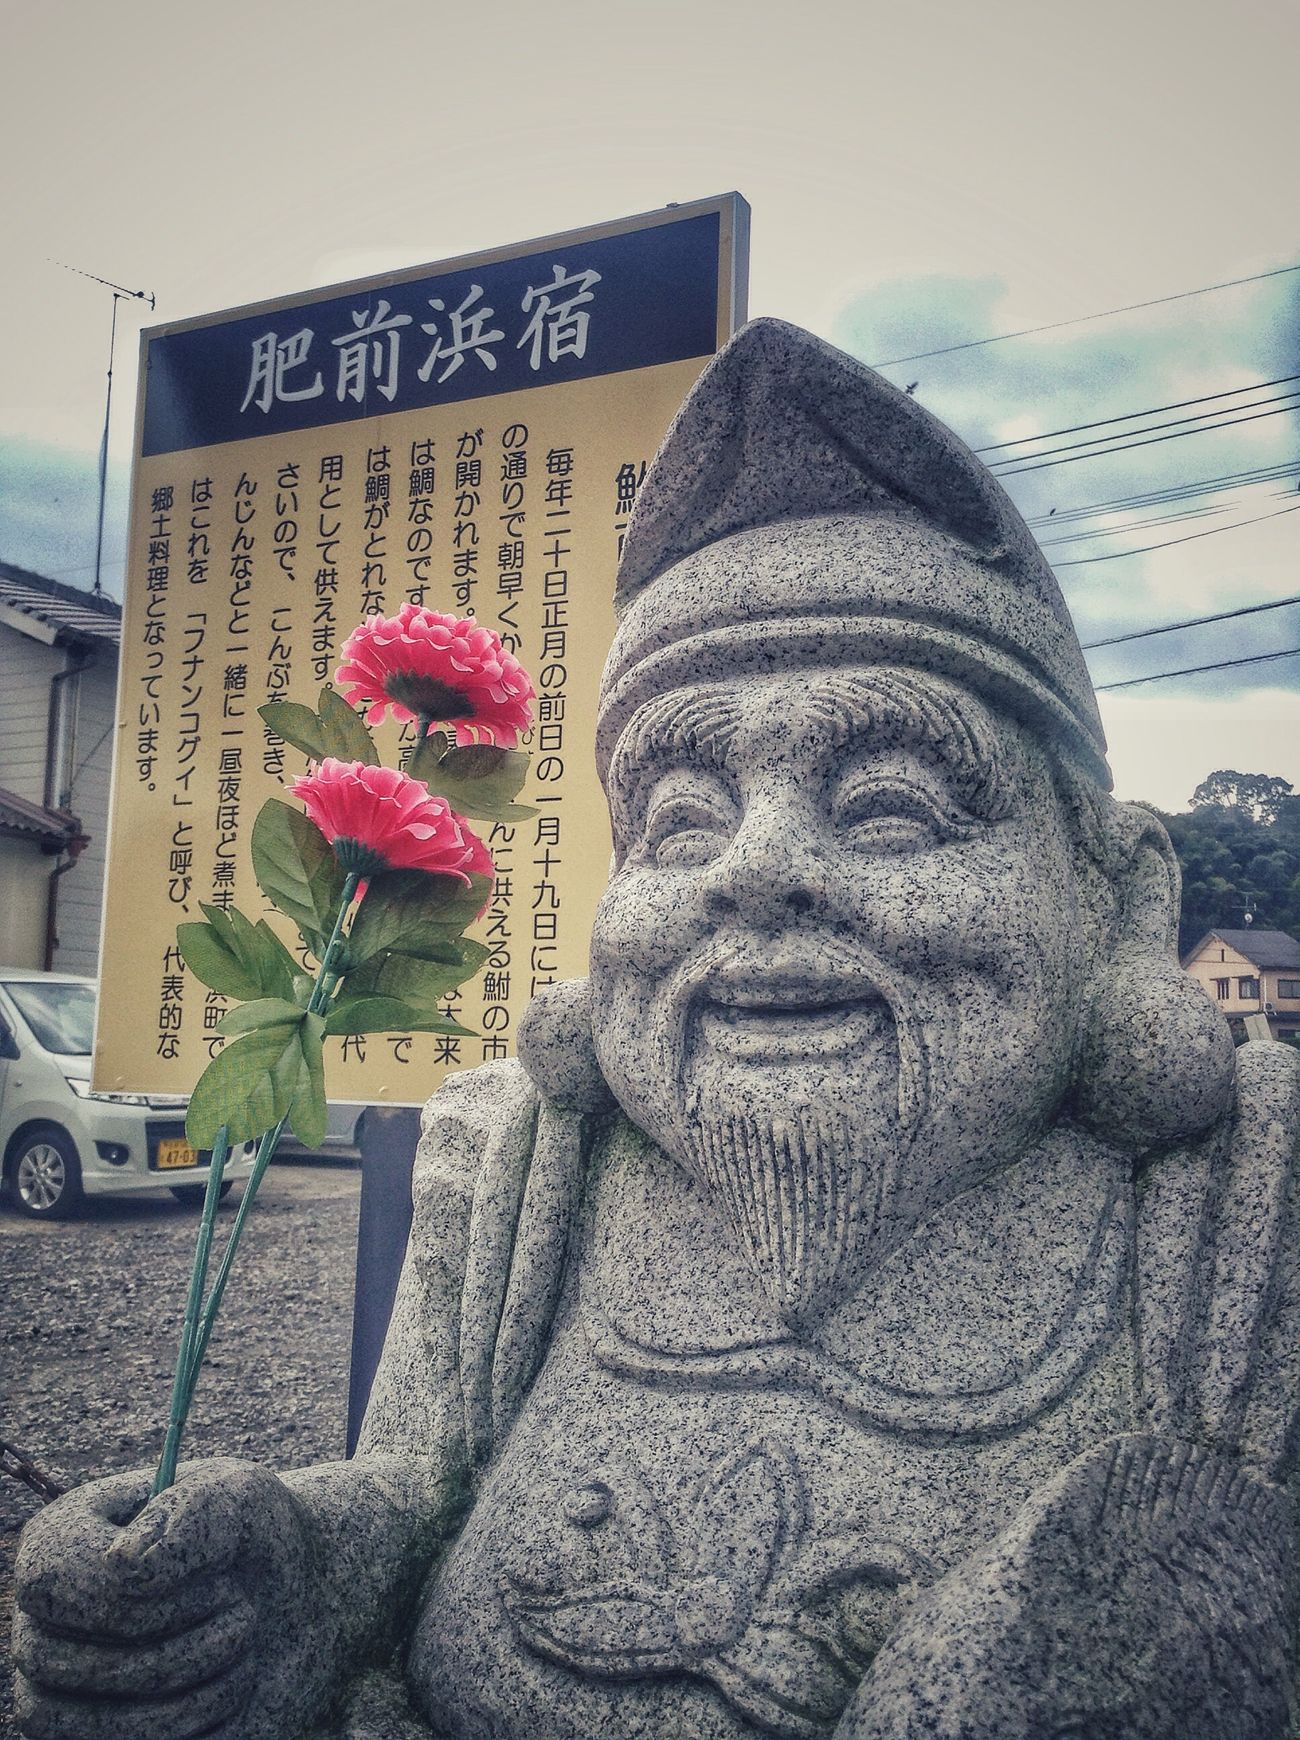 "Hoteisama Sculpture with Imitation Flowering : Hizen hama Shuku, Kashima City. Saga,Japan Histric Place since Edo period ""Sake cellar Street"" Streetphoto_color IPod Touch Photography 33mm. October 25, 2016. 2nd shot Walking Around The City  Kashima City, Saga Around the Kyushu short Trip Photo"